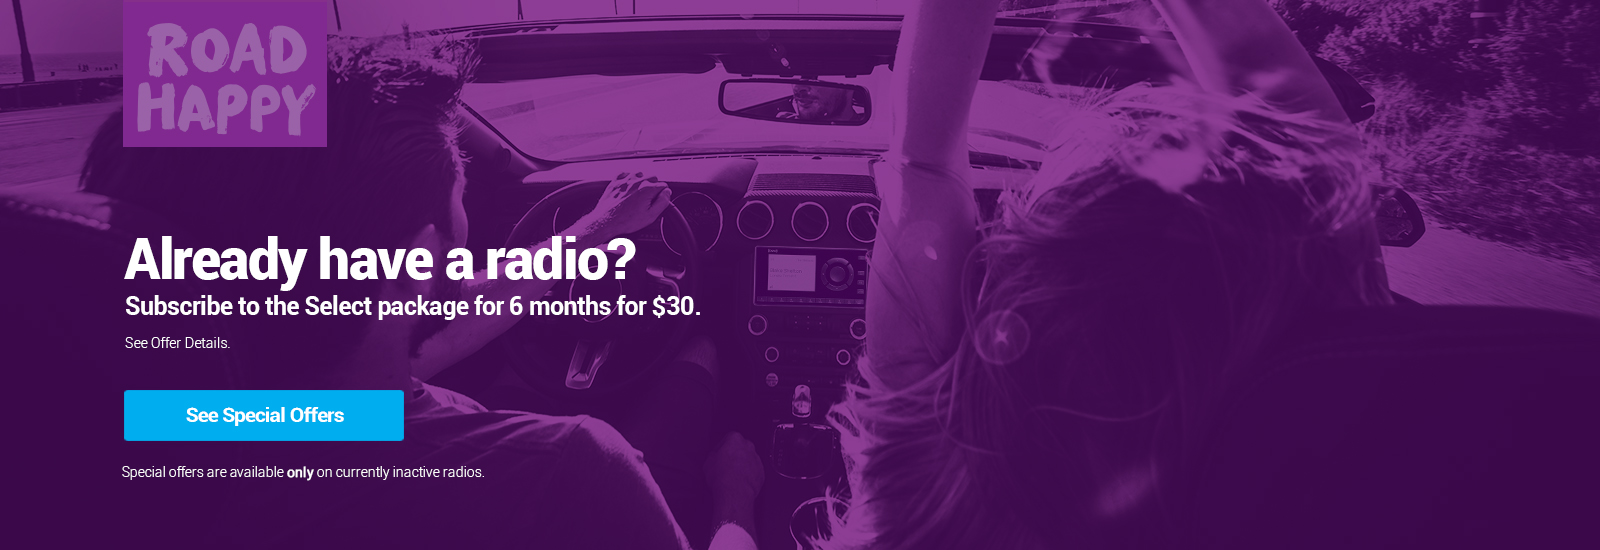 Already Have a Radio? Activate it now with a special offer